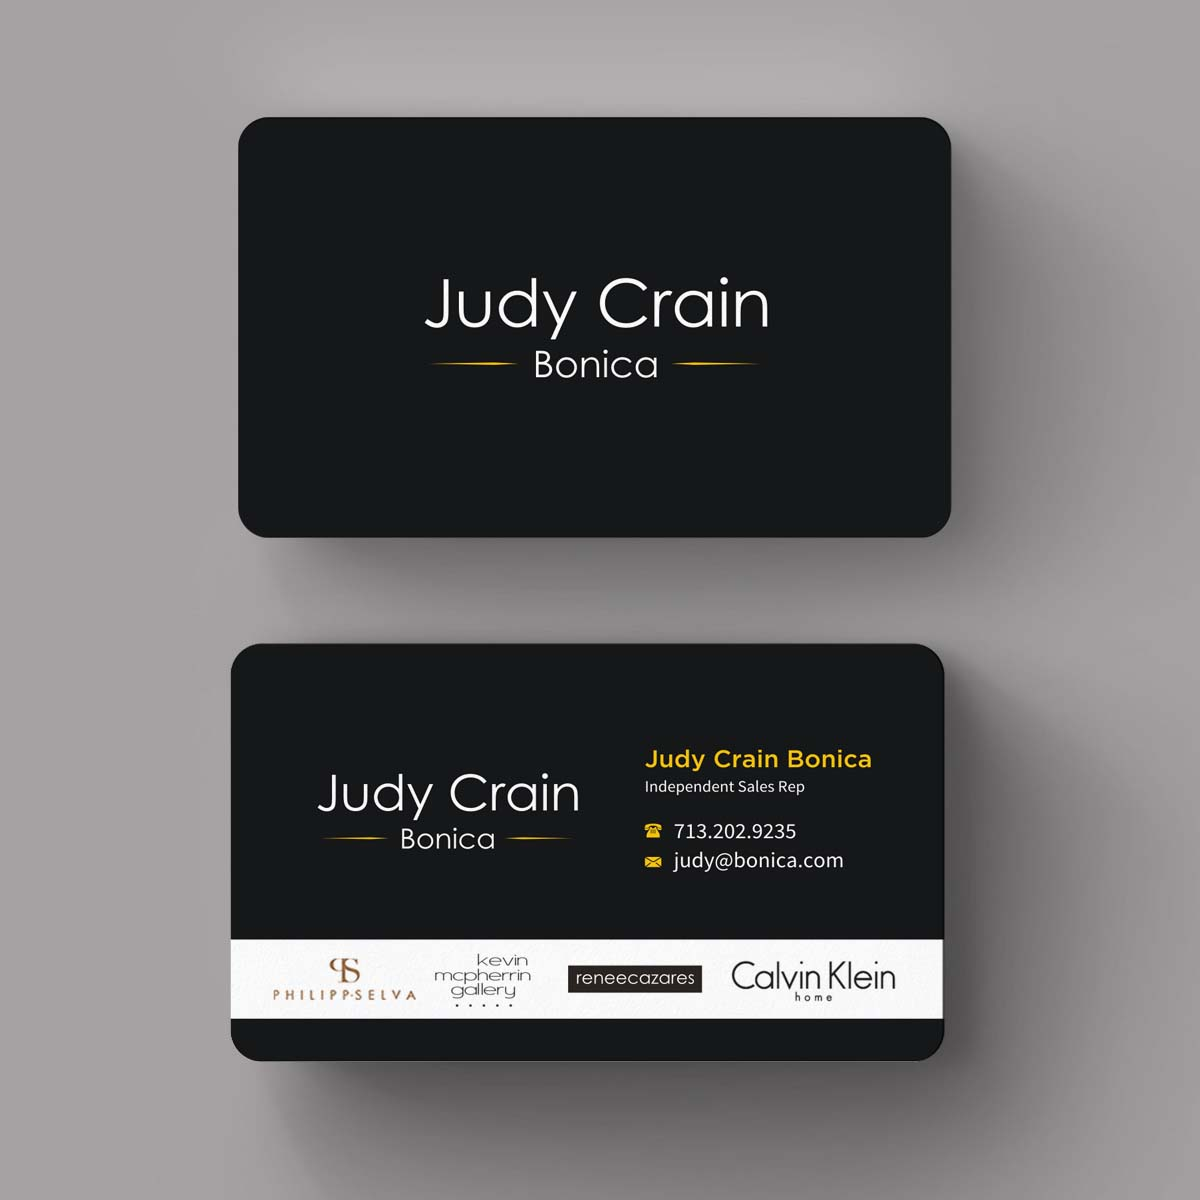 Business Card Design by INDIAN_Ashok | Design #7983393